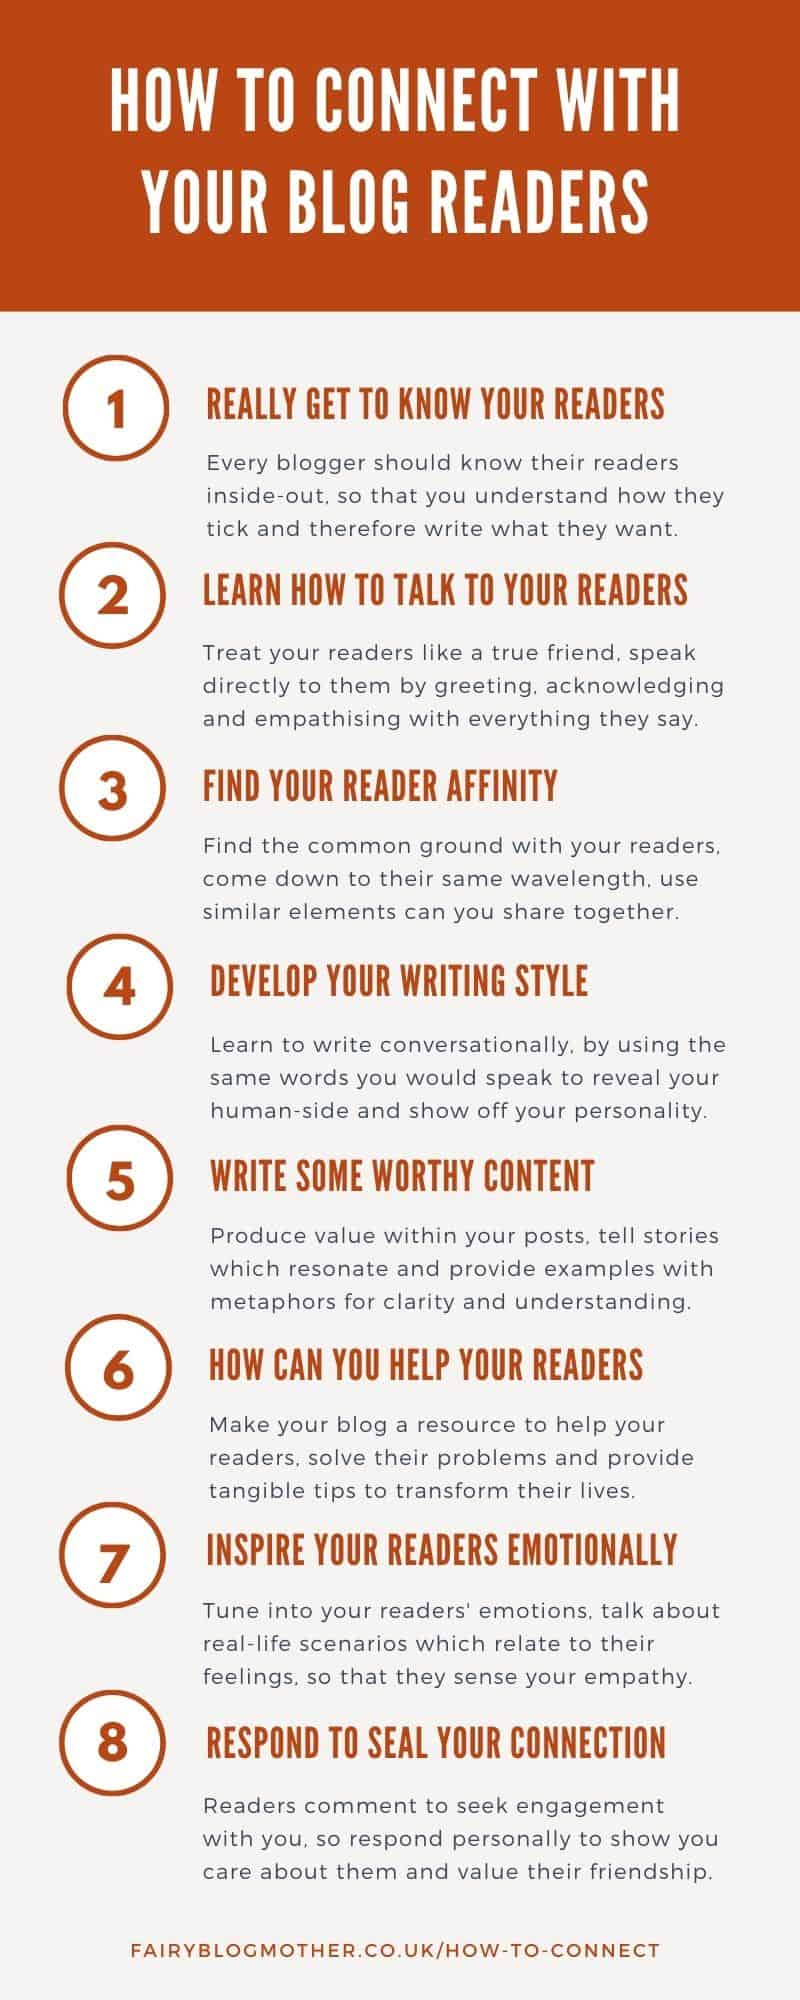 8 tips on how to connect with your blog readers